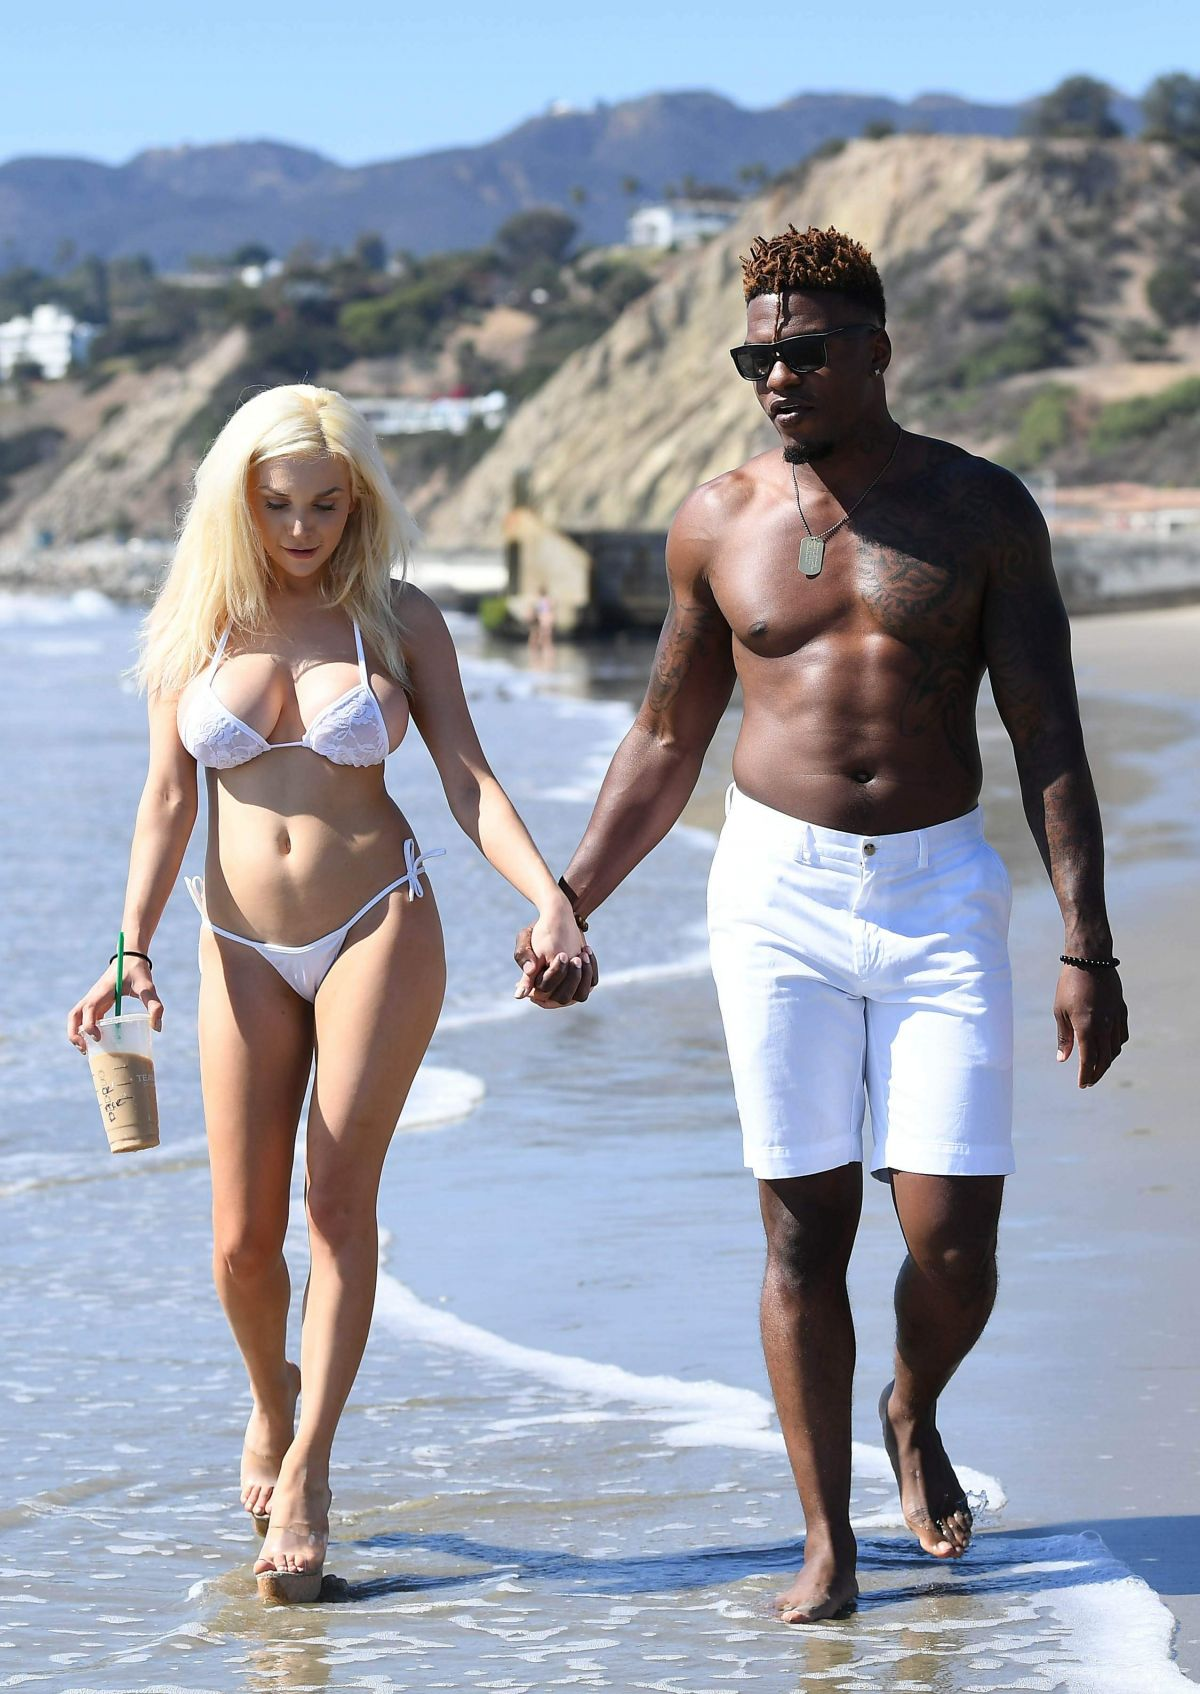 courtney-stodden-on-the-beach-in-malibu-19.jpg